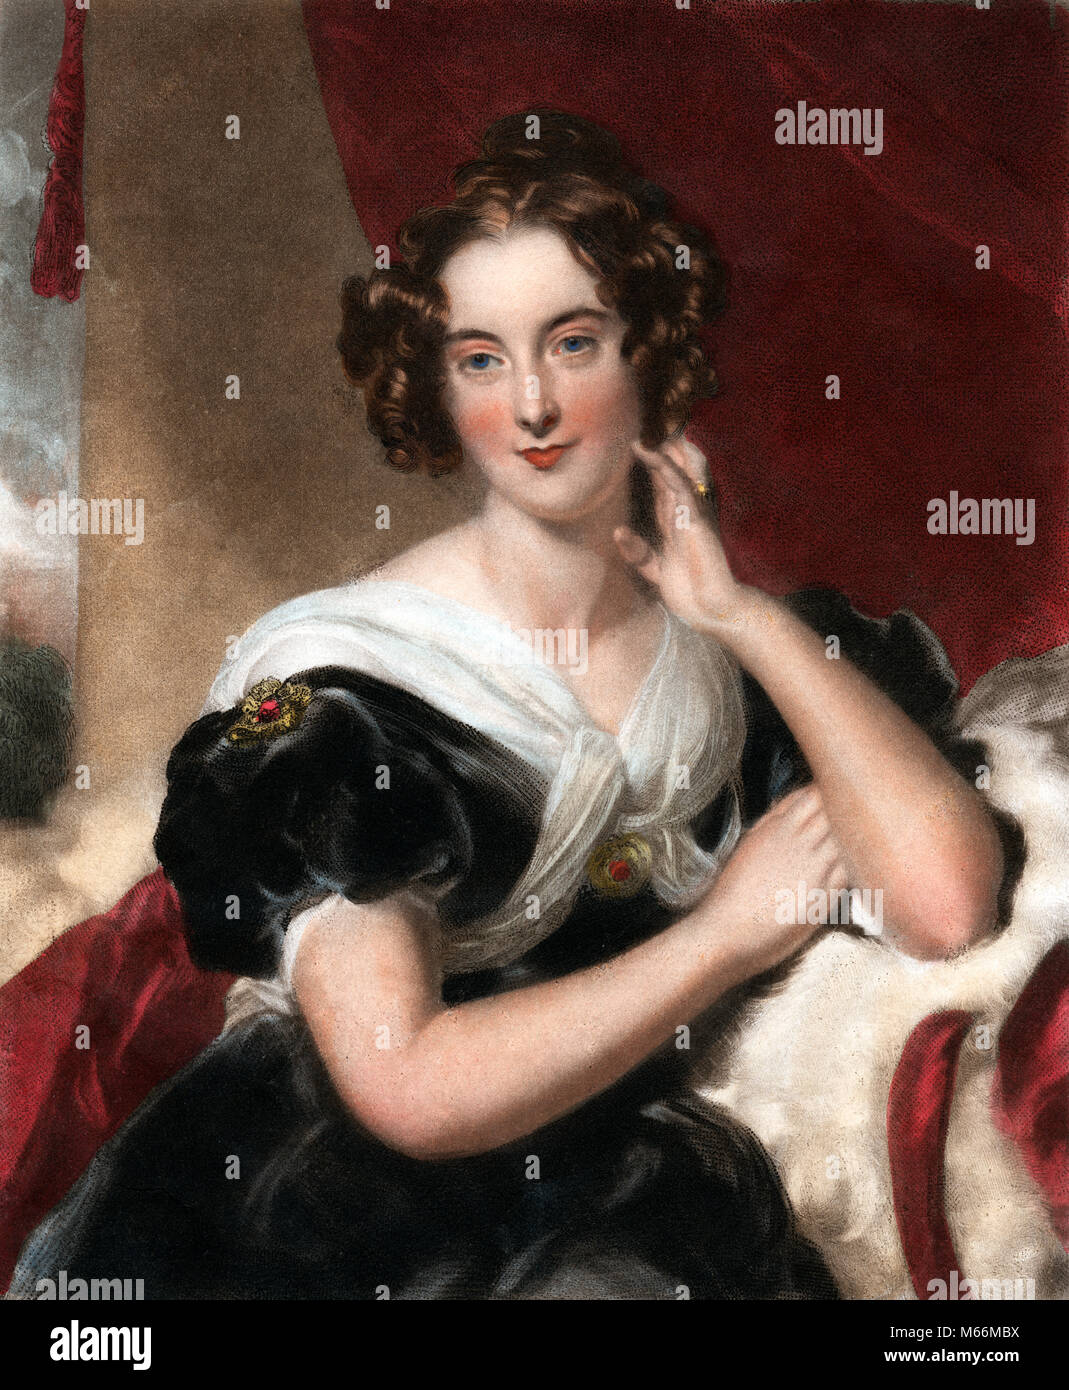 1800s 1827 PORTRAIT OF BEAUTIFUL MISS MACDONALD LOOKING AT CAMERA BY SIR THOMAS LAWRENCE - kh13264 CPC001 HARS RED - Stock Image